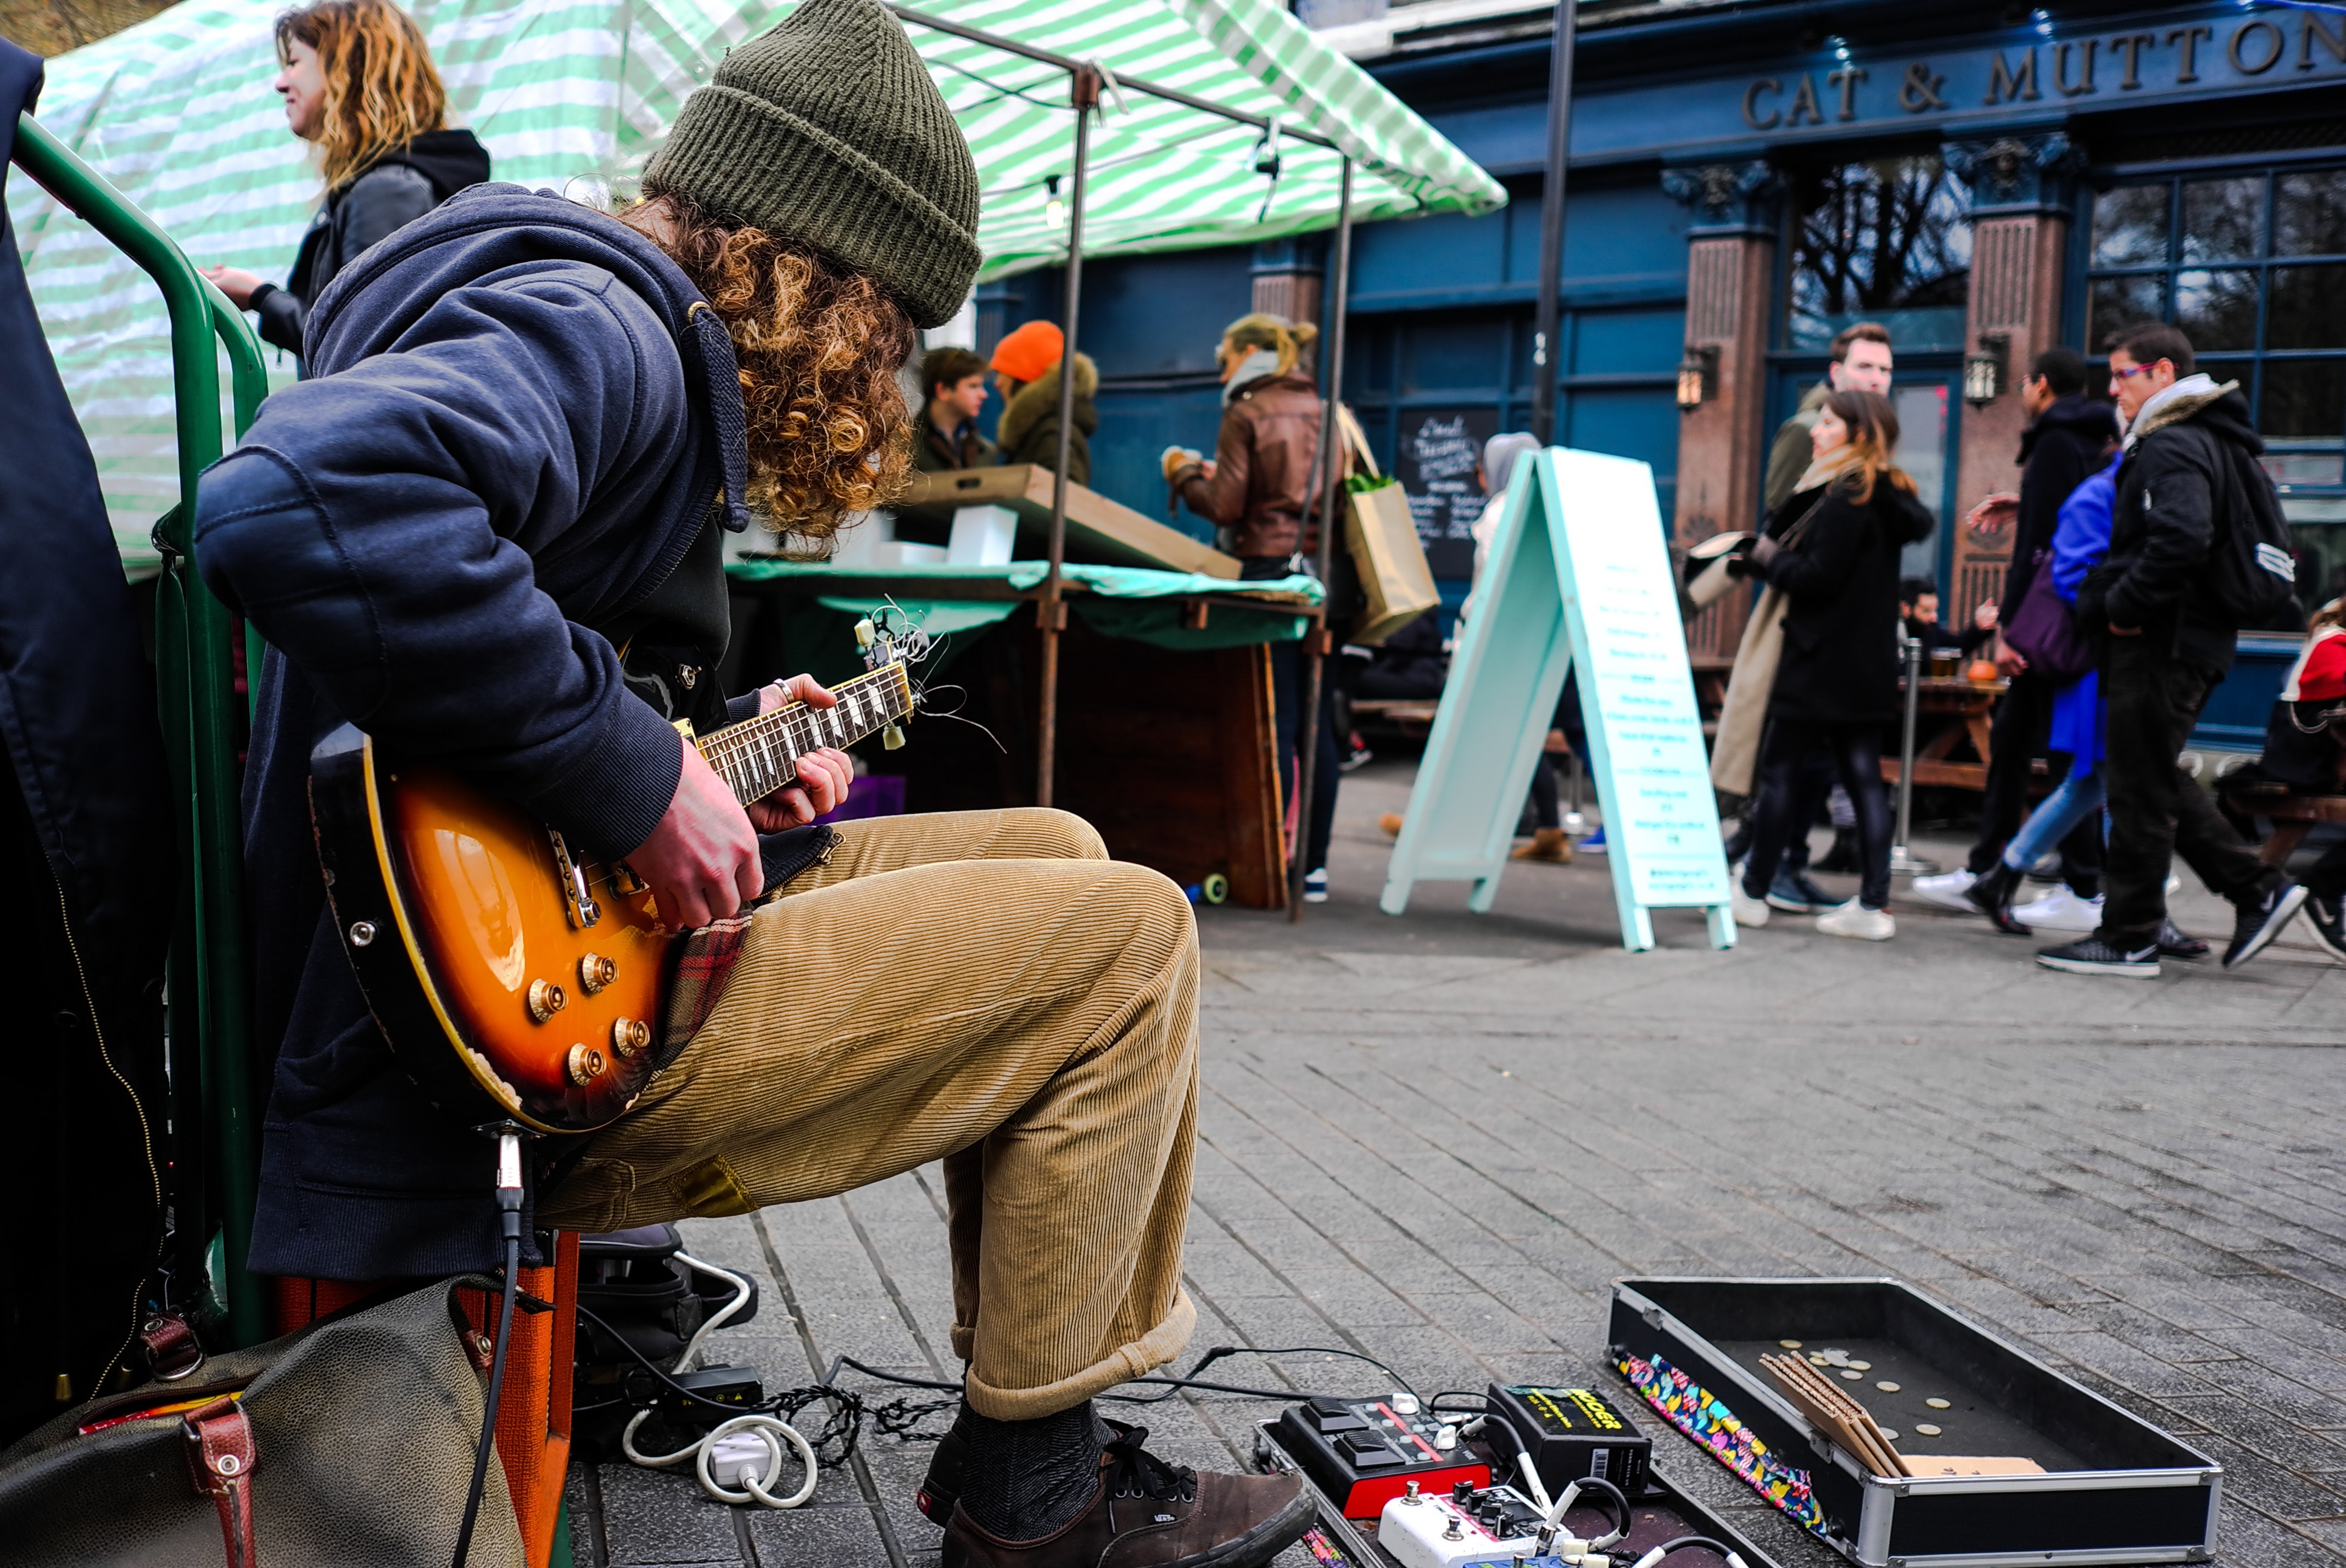 A young man in a beanie with an electric guitar busking in London